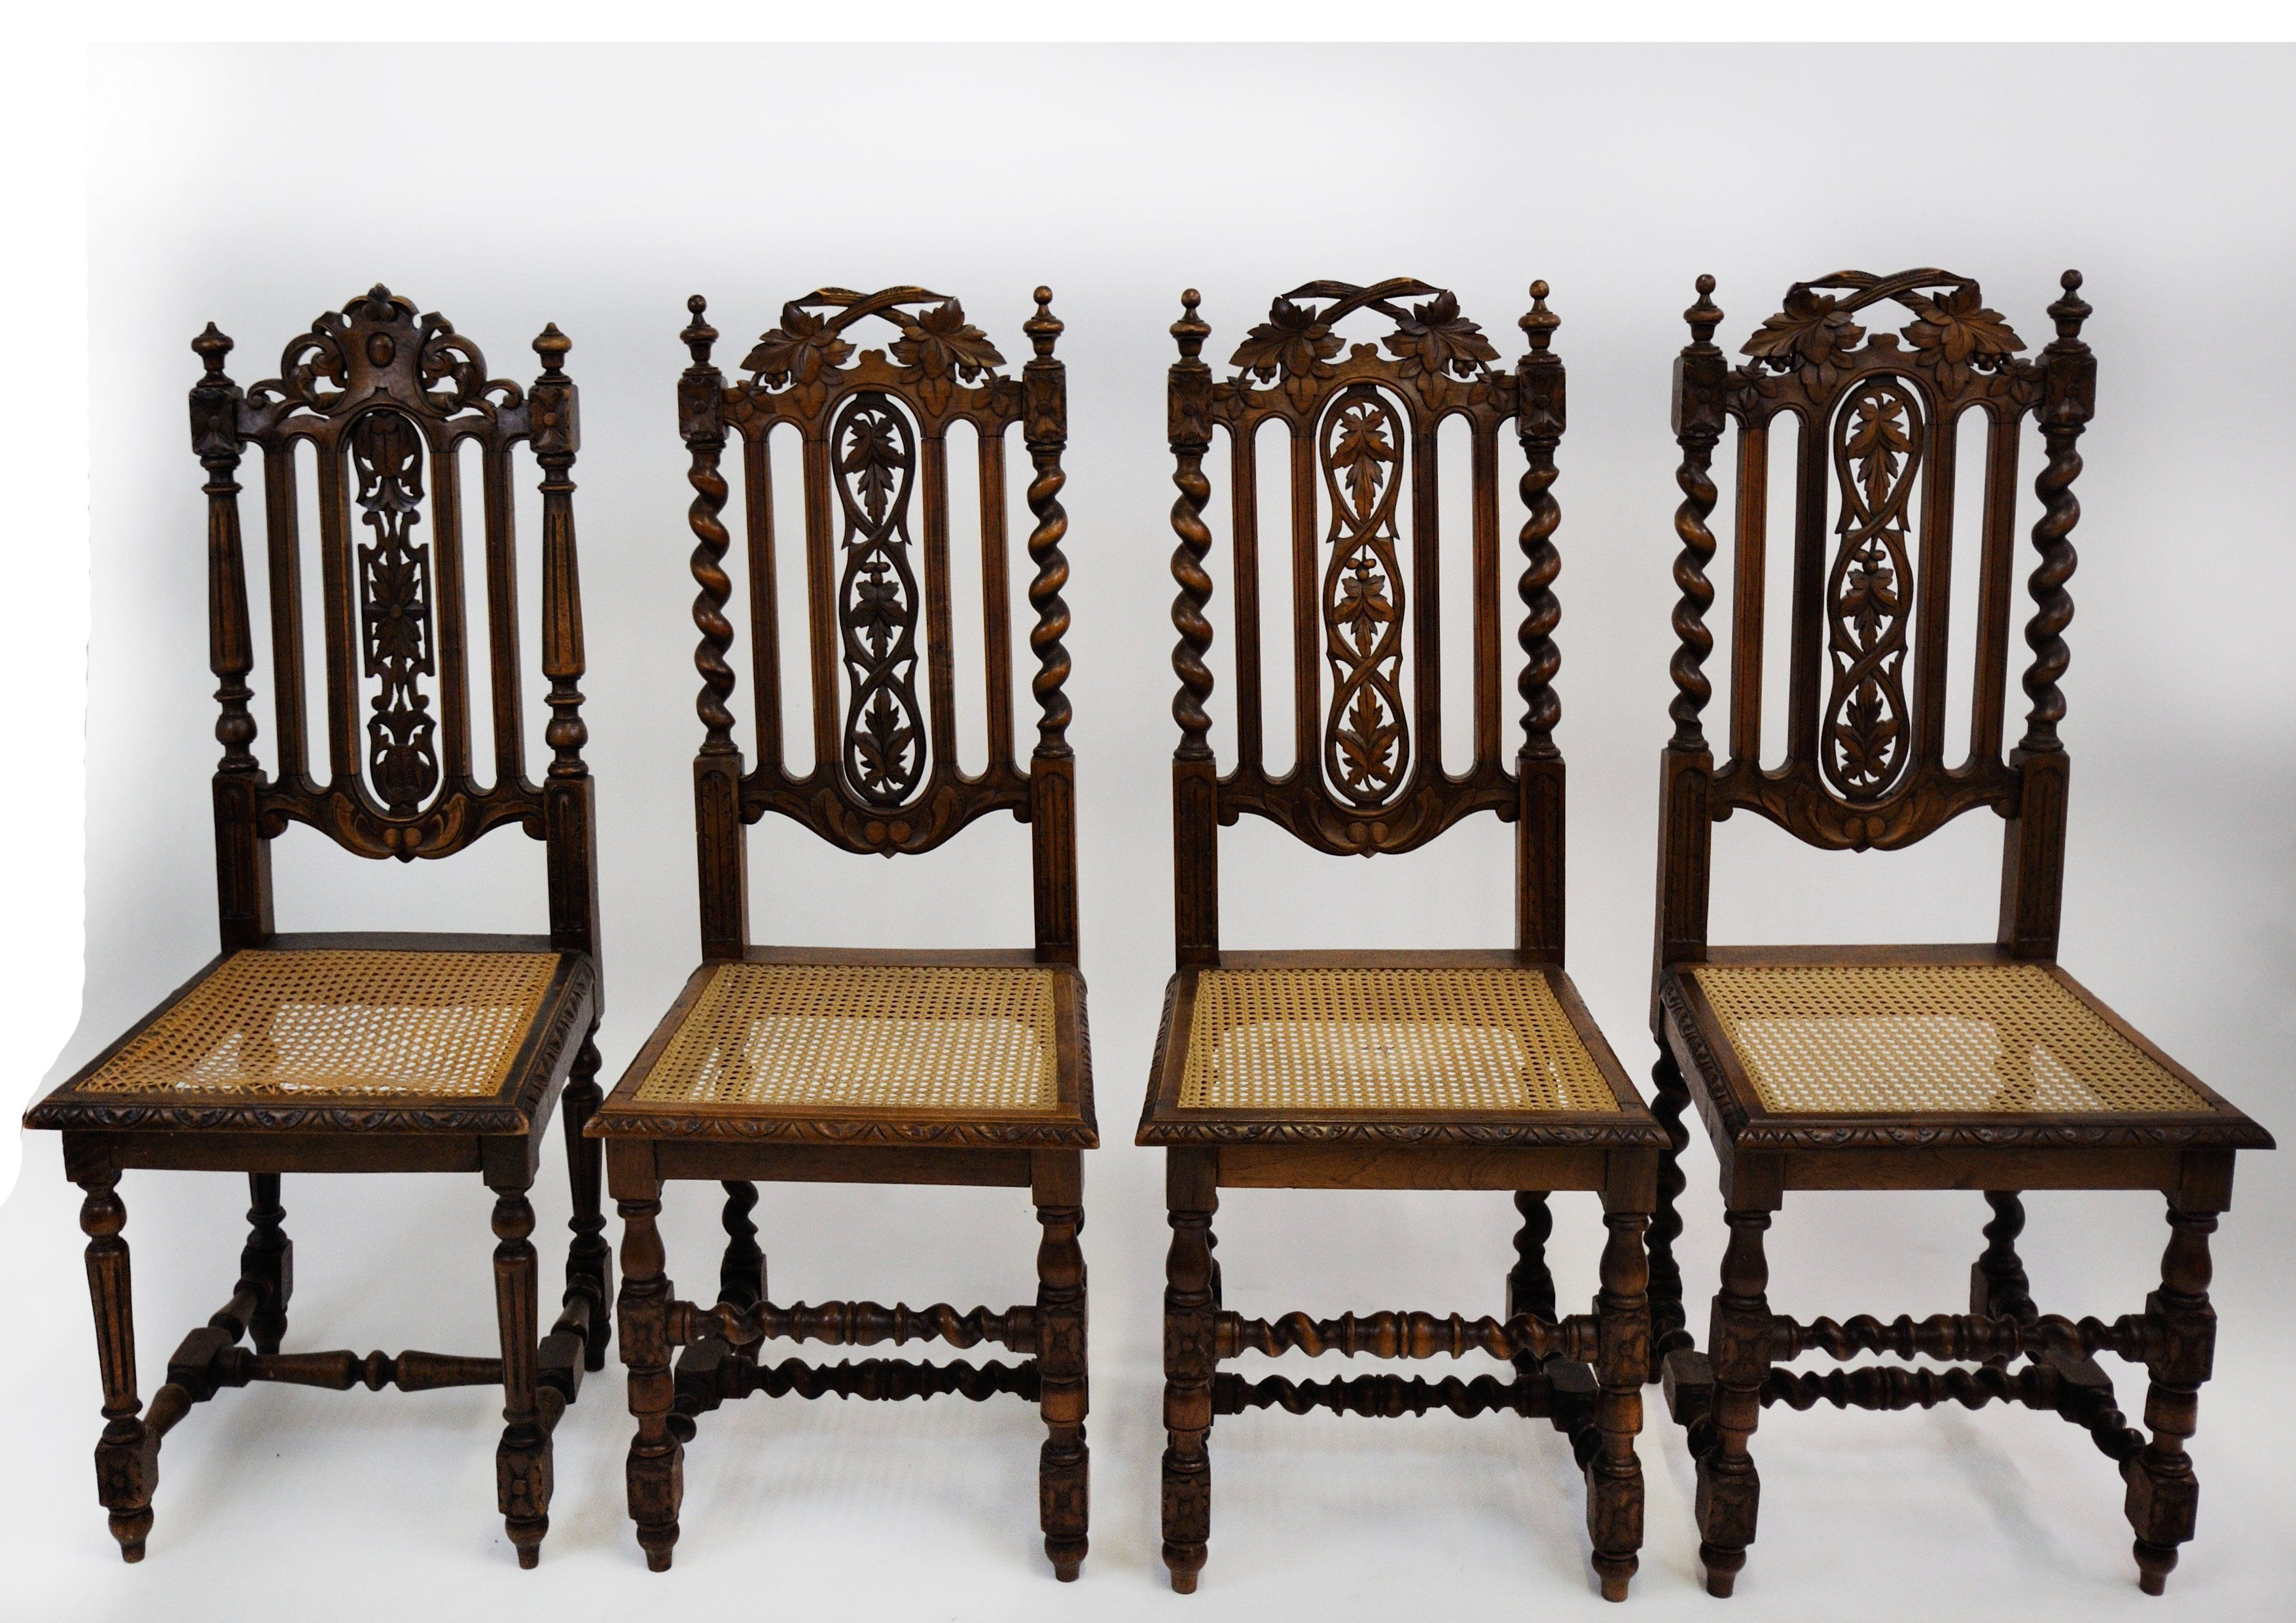 Marvelous Antique English Jacobean Dining Chair Set Of 4 Barley Twist Pabps2019 Chair Design Images Pabps2019Com